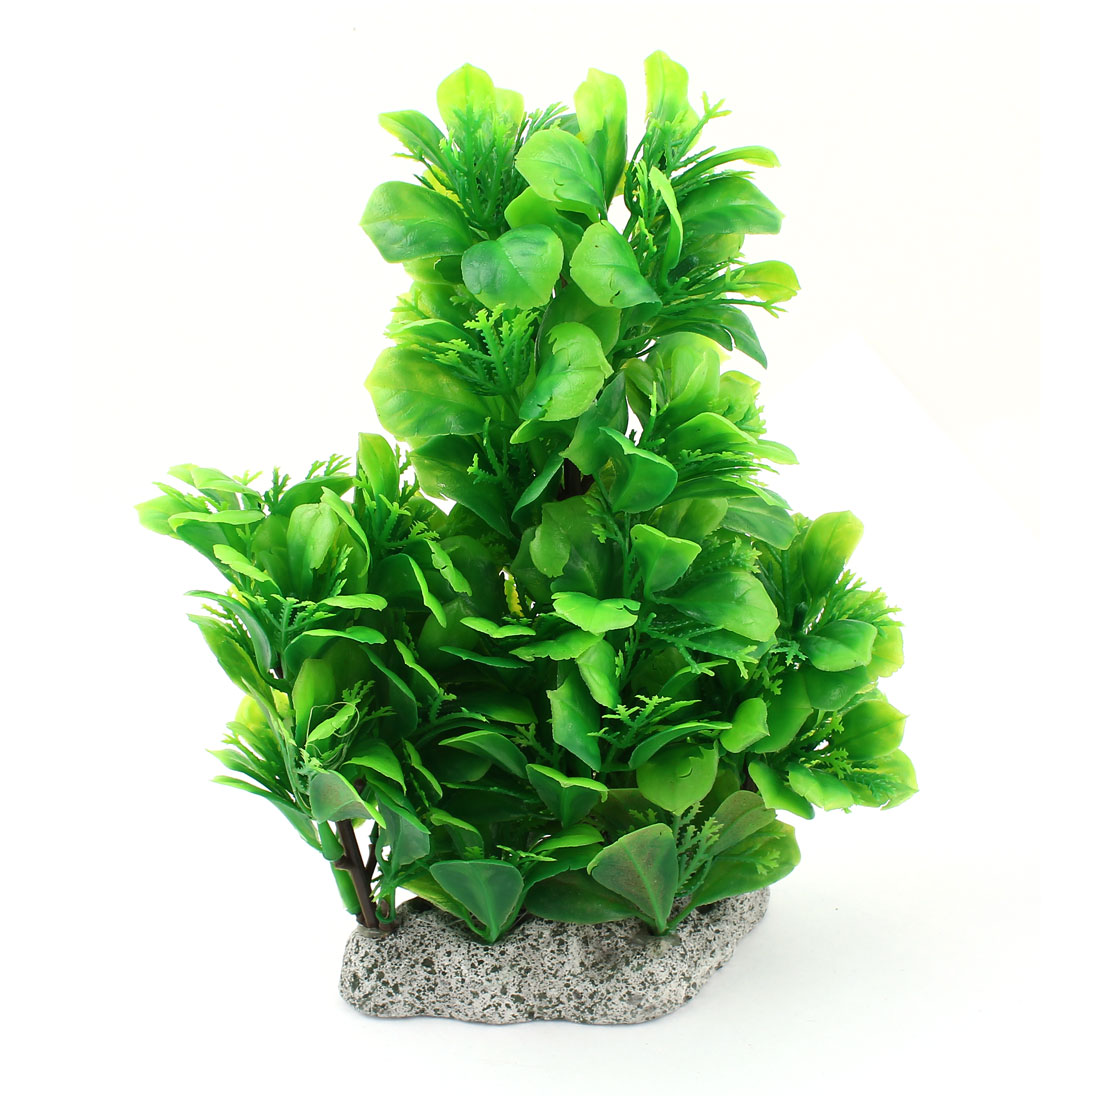 22cm High Green Artificial Plastic Water Plants Ornament for Fish Tank Aquarium